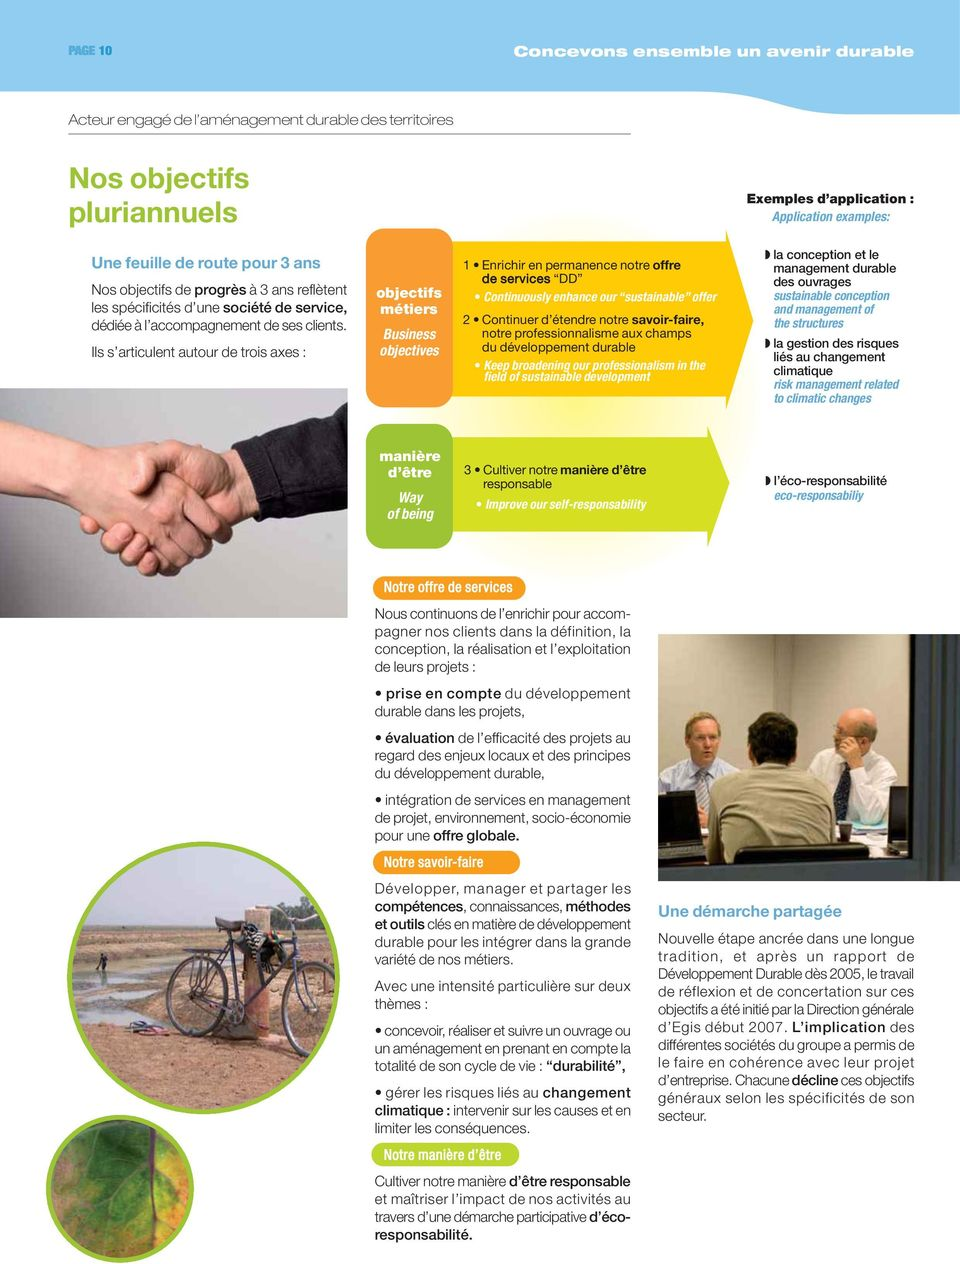 Ils s articulent autour de trois axes : objectifs métiers Business objectives 1 Enrichir en permanence notre offre de services DD Continuously enhance our sustainable offer 2 Continuer d étendre